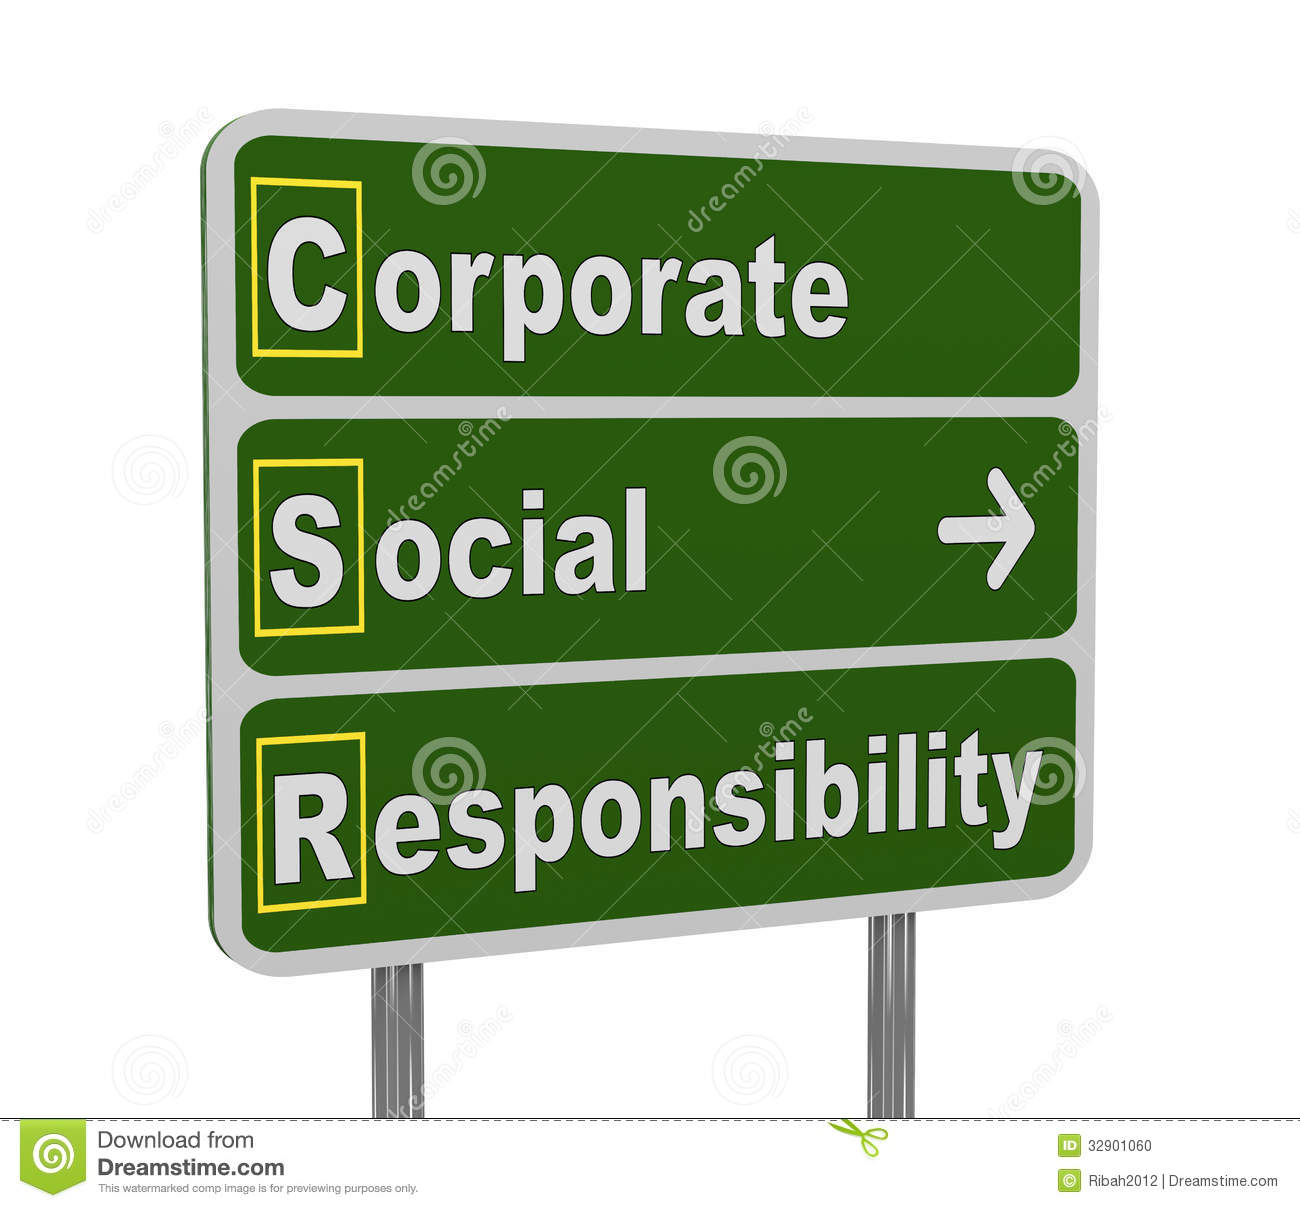 phd thesis on csr in india Corporate social responsibility (csr) deals with the impact of organisational  activities on society and the environment presently, corporate responsibility has .